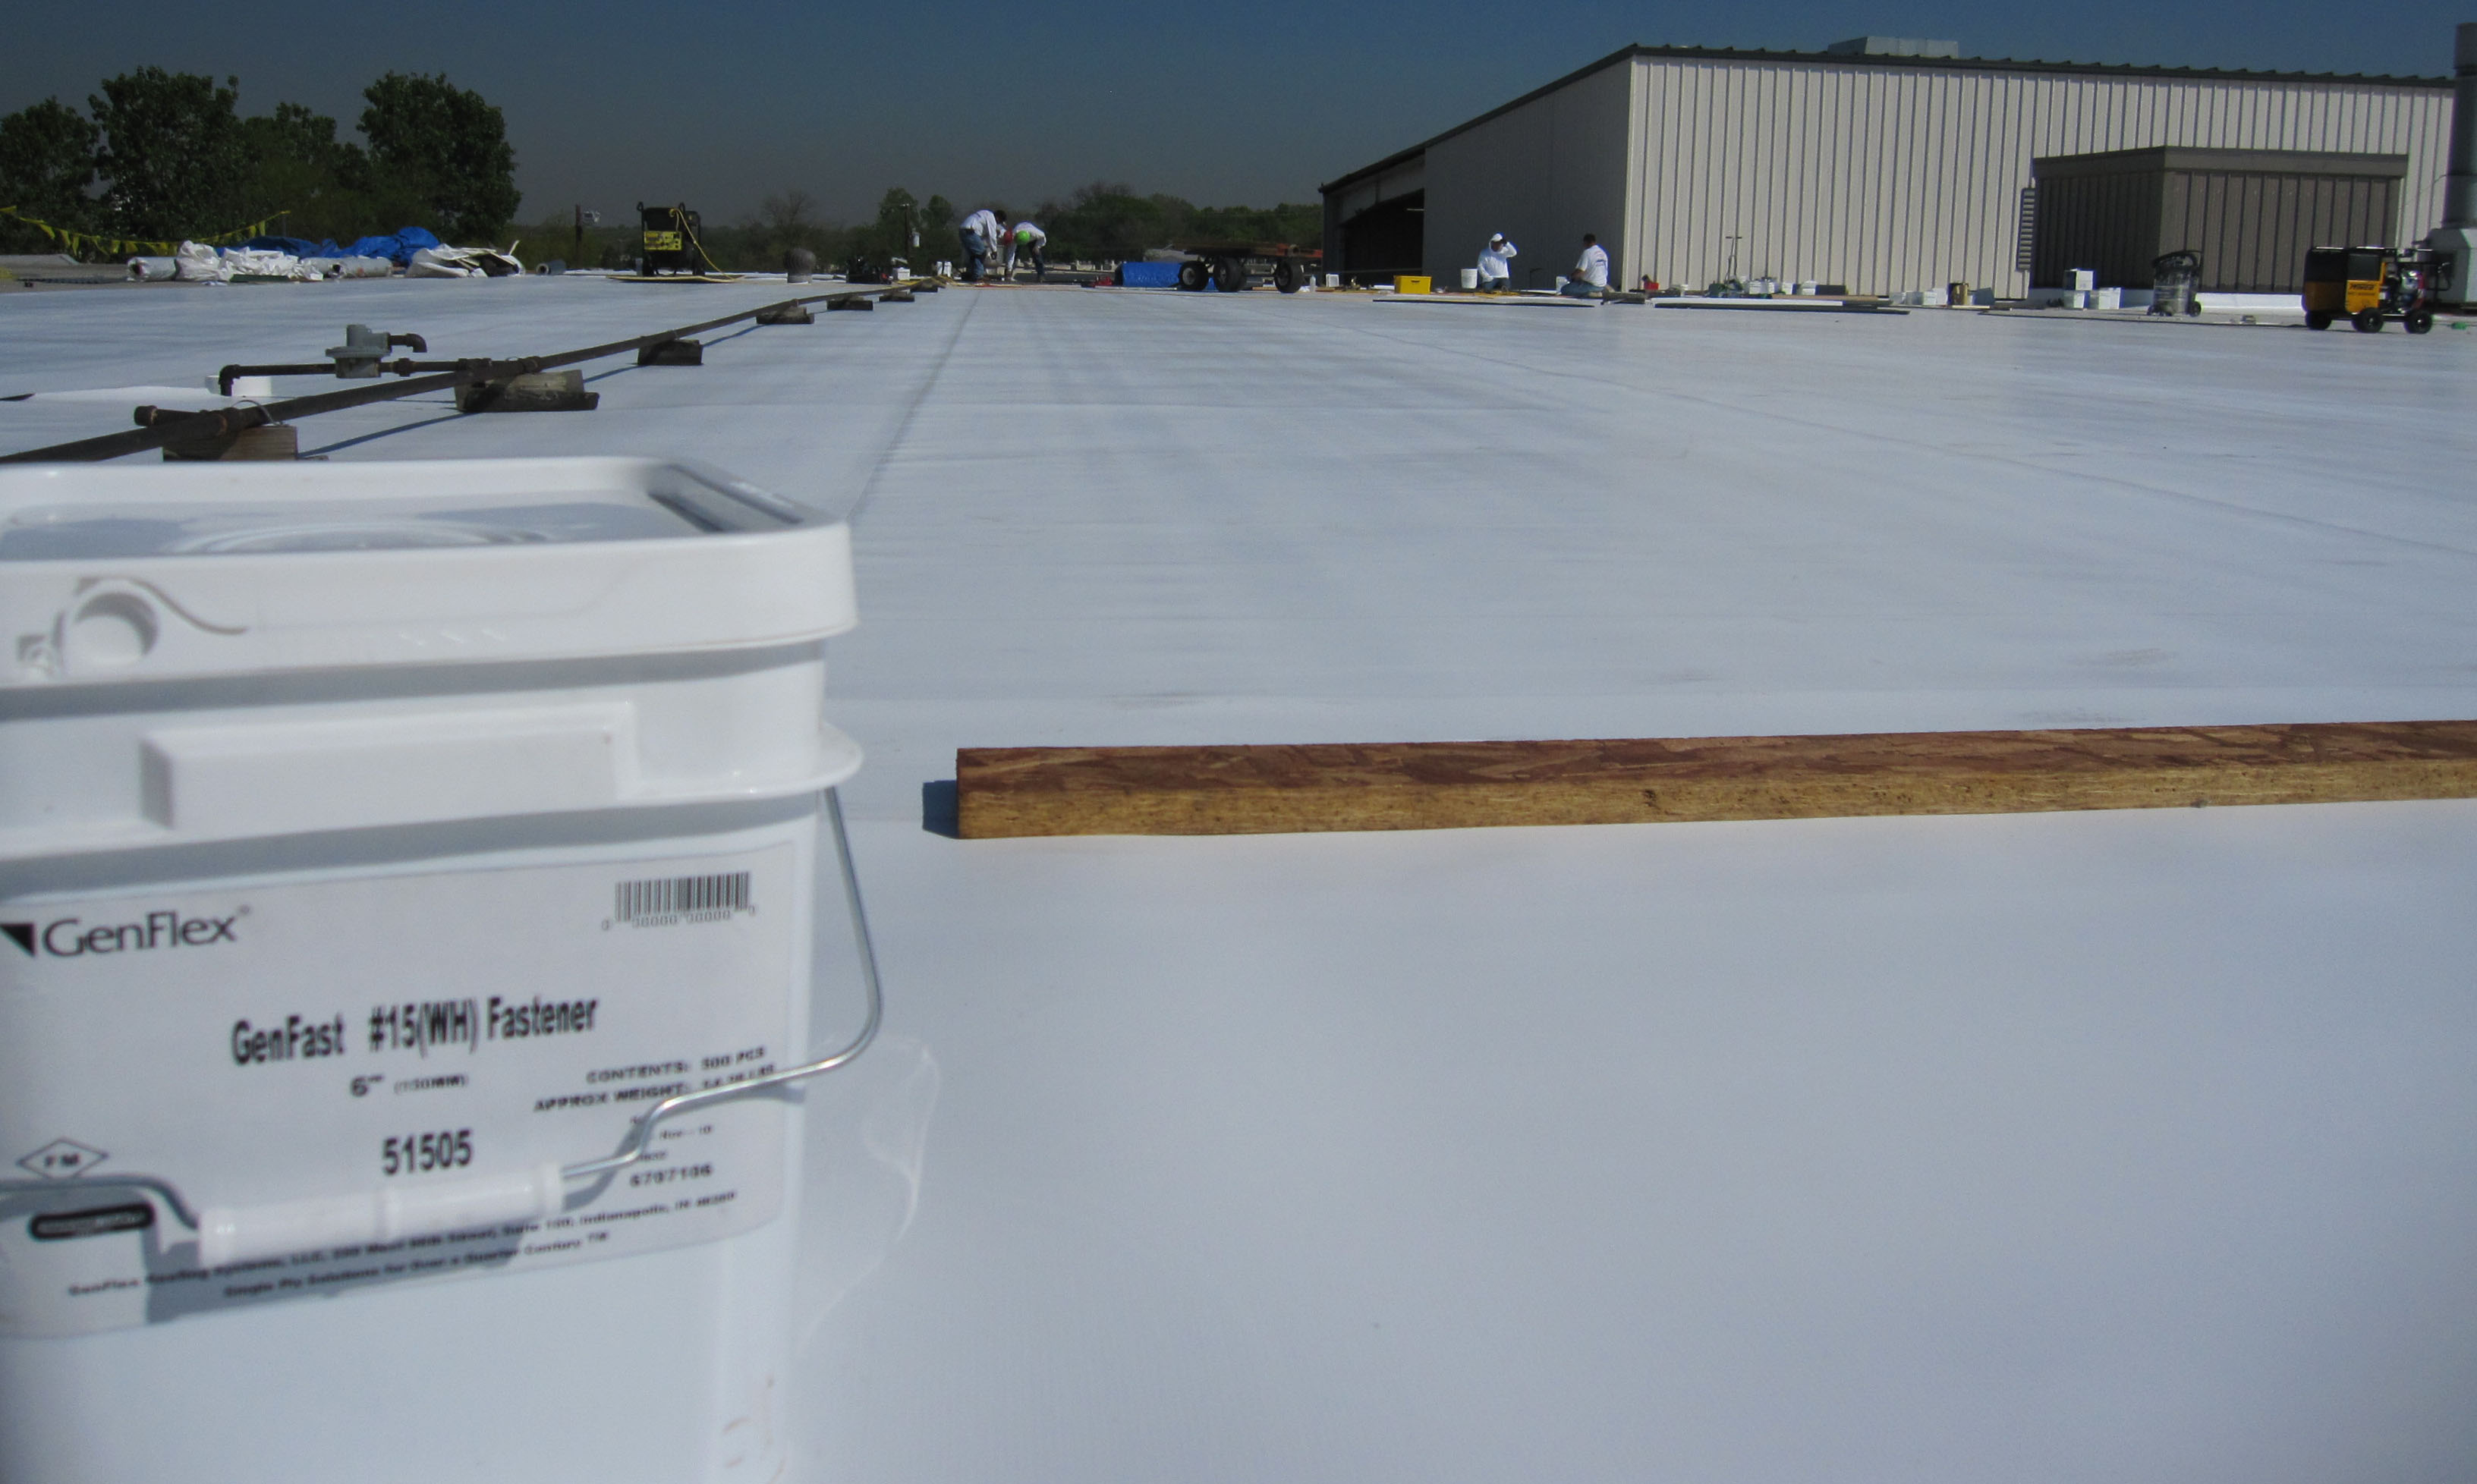 Hilite International Building - Carrollton, Texas - New GenFlex TPO Roofing Installation